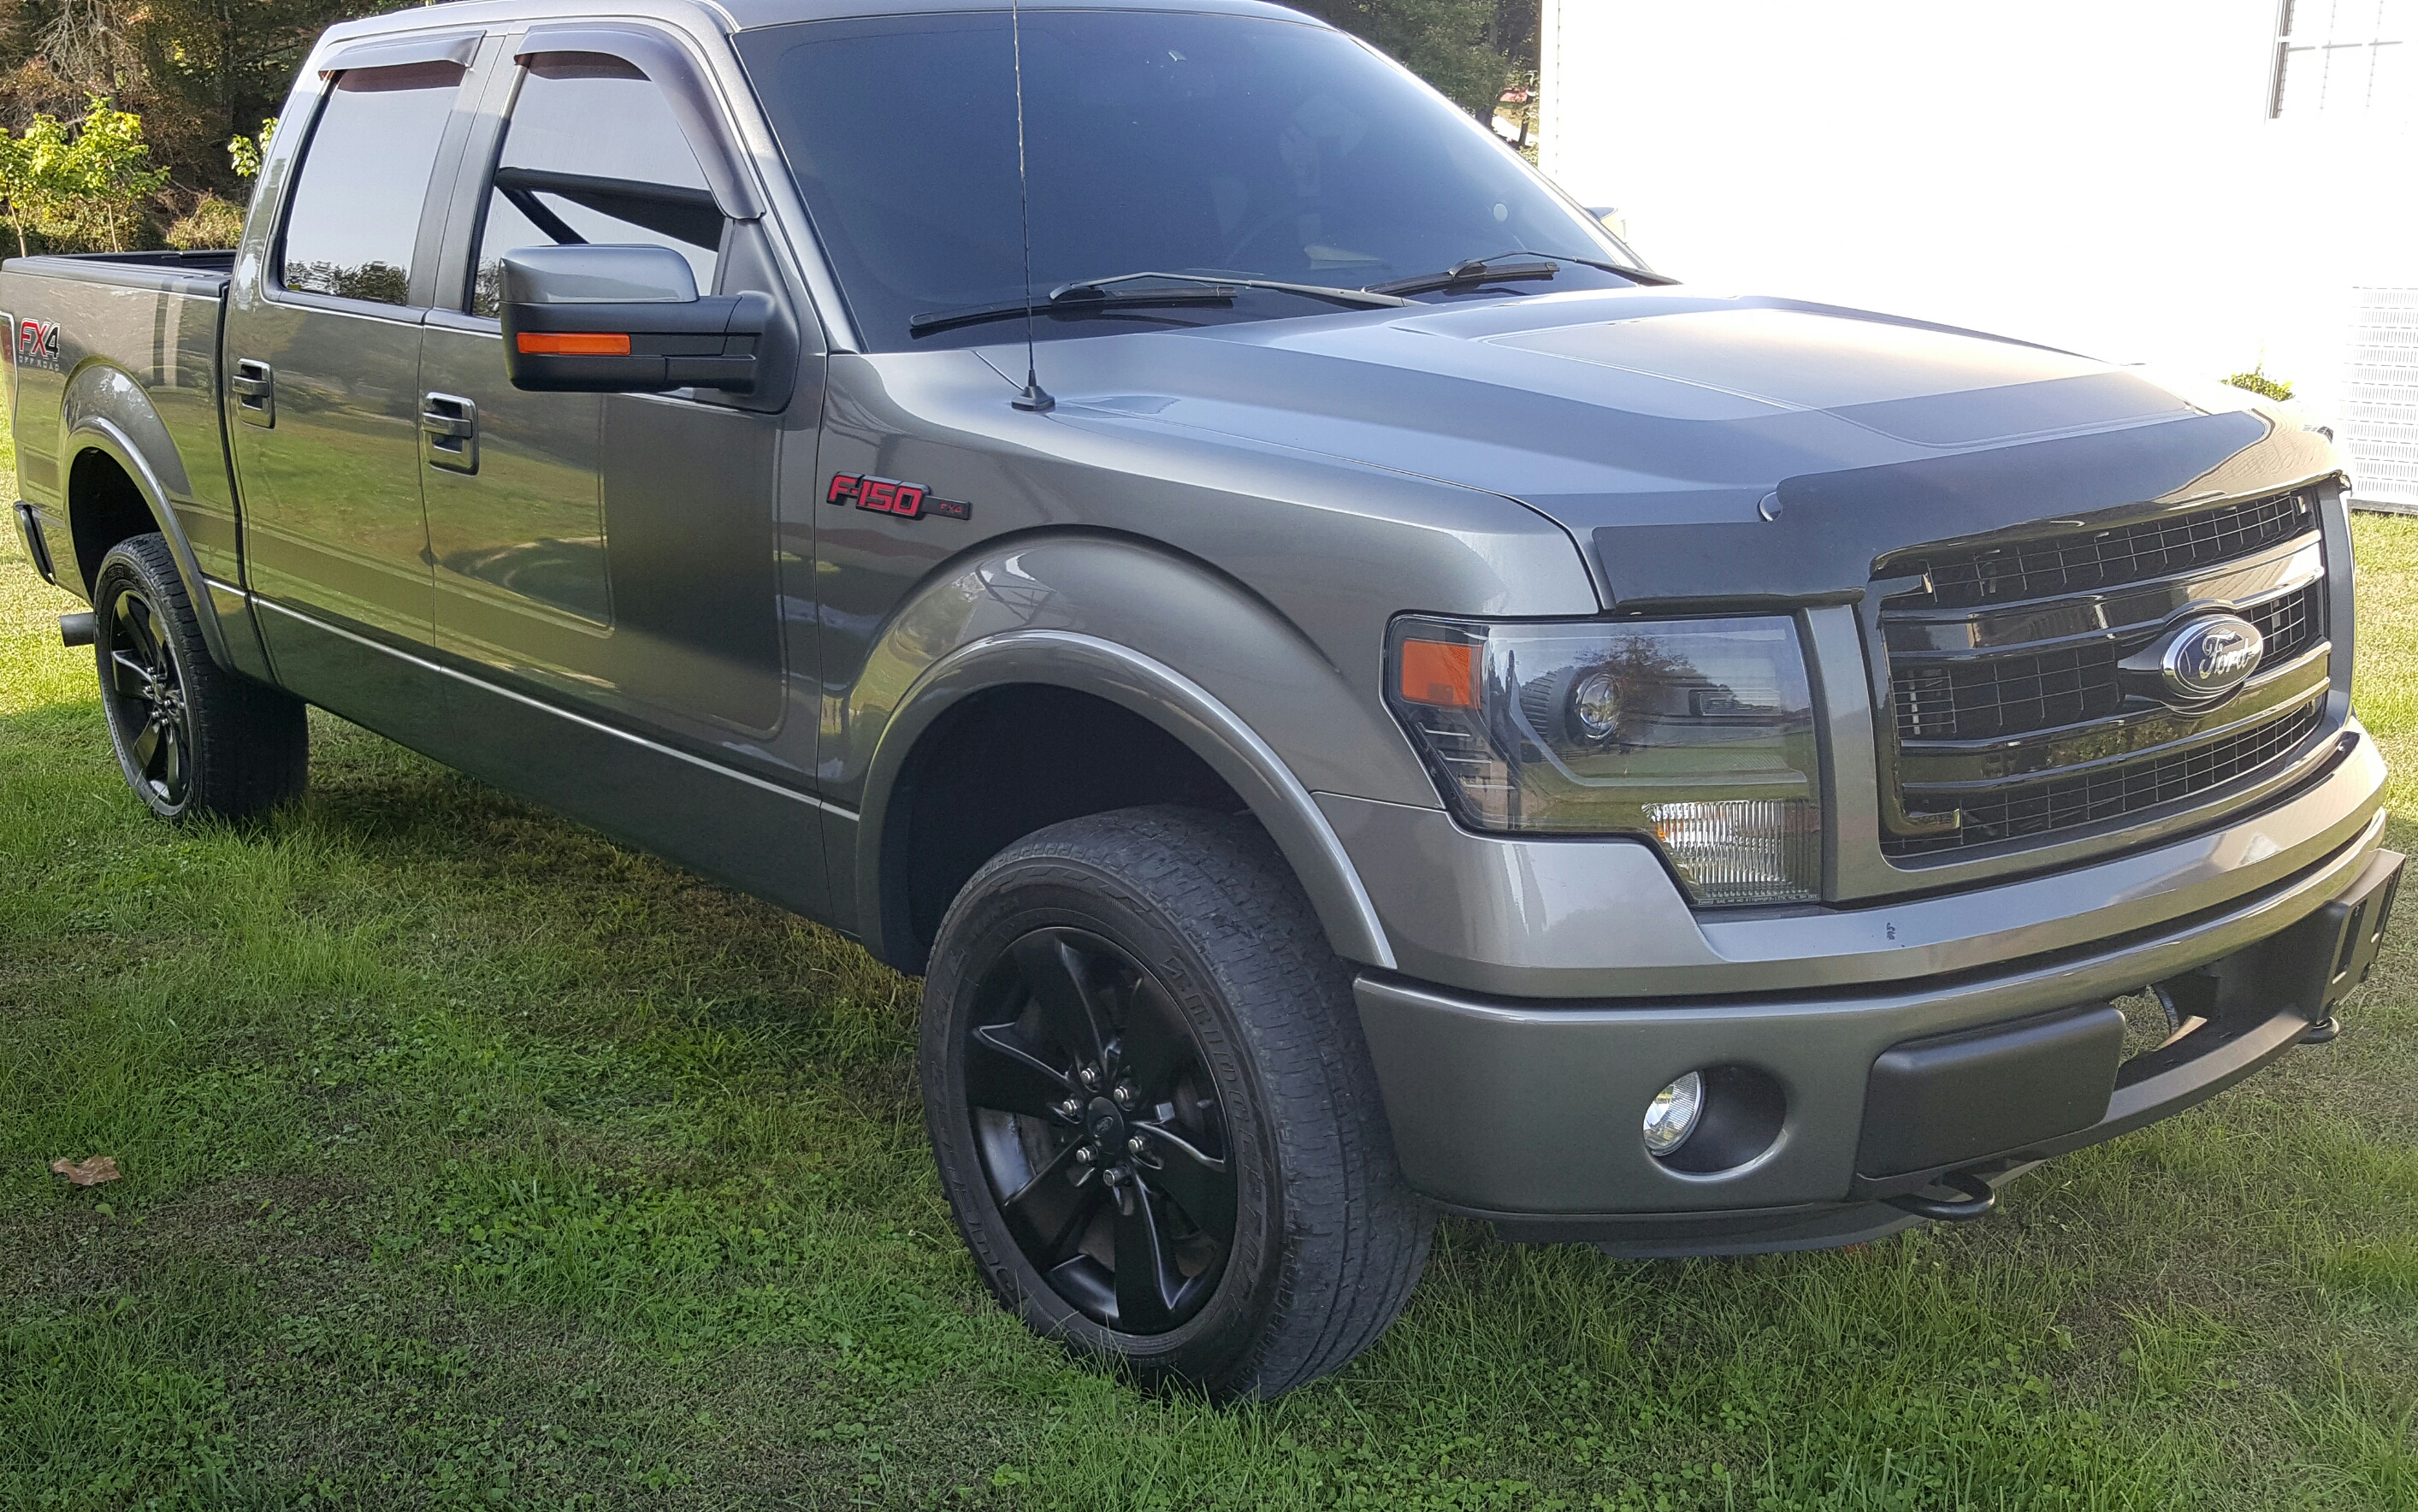 2011 F150 Leveling Kit >> For Sale - 2013 Ford f150 FX4 Super Crew Ecoboost-LOADED! $30995 | Trap Shooters Forum